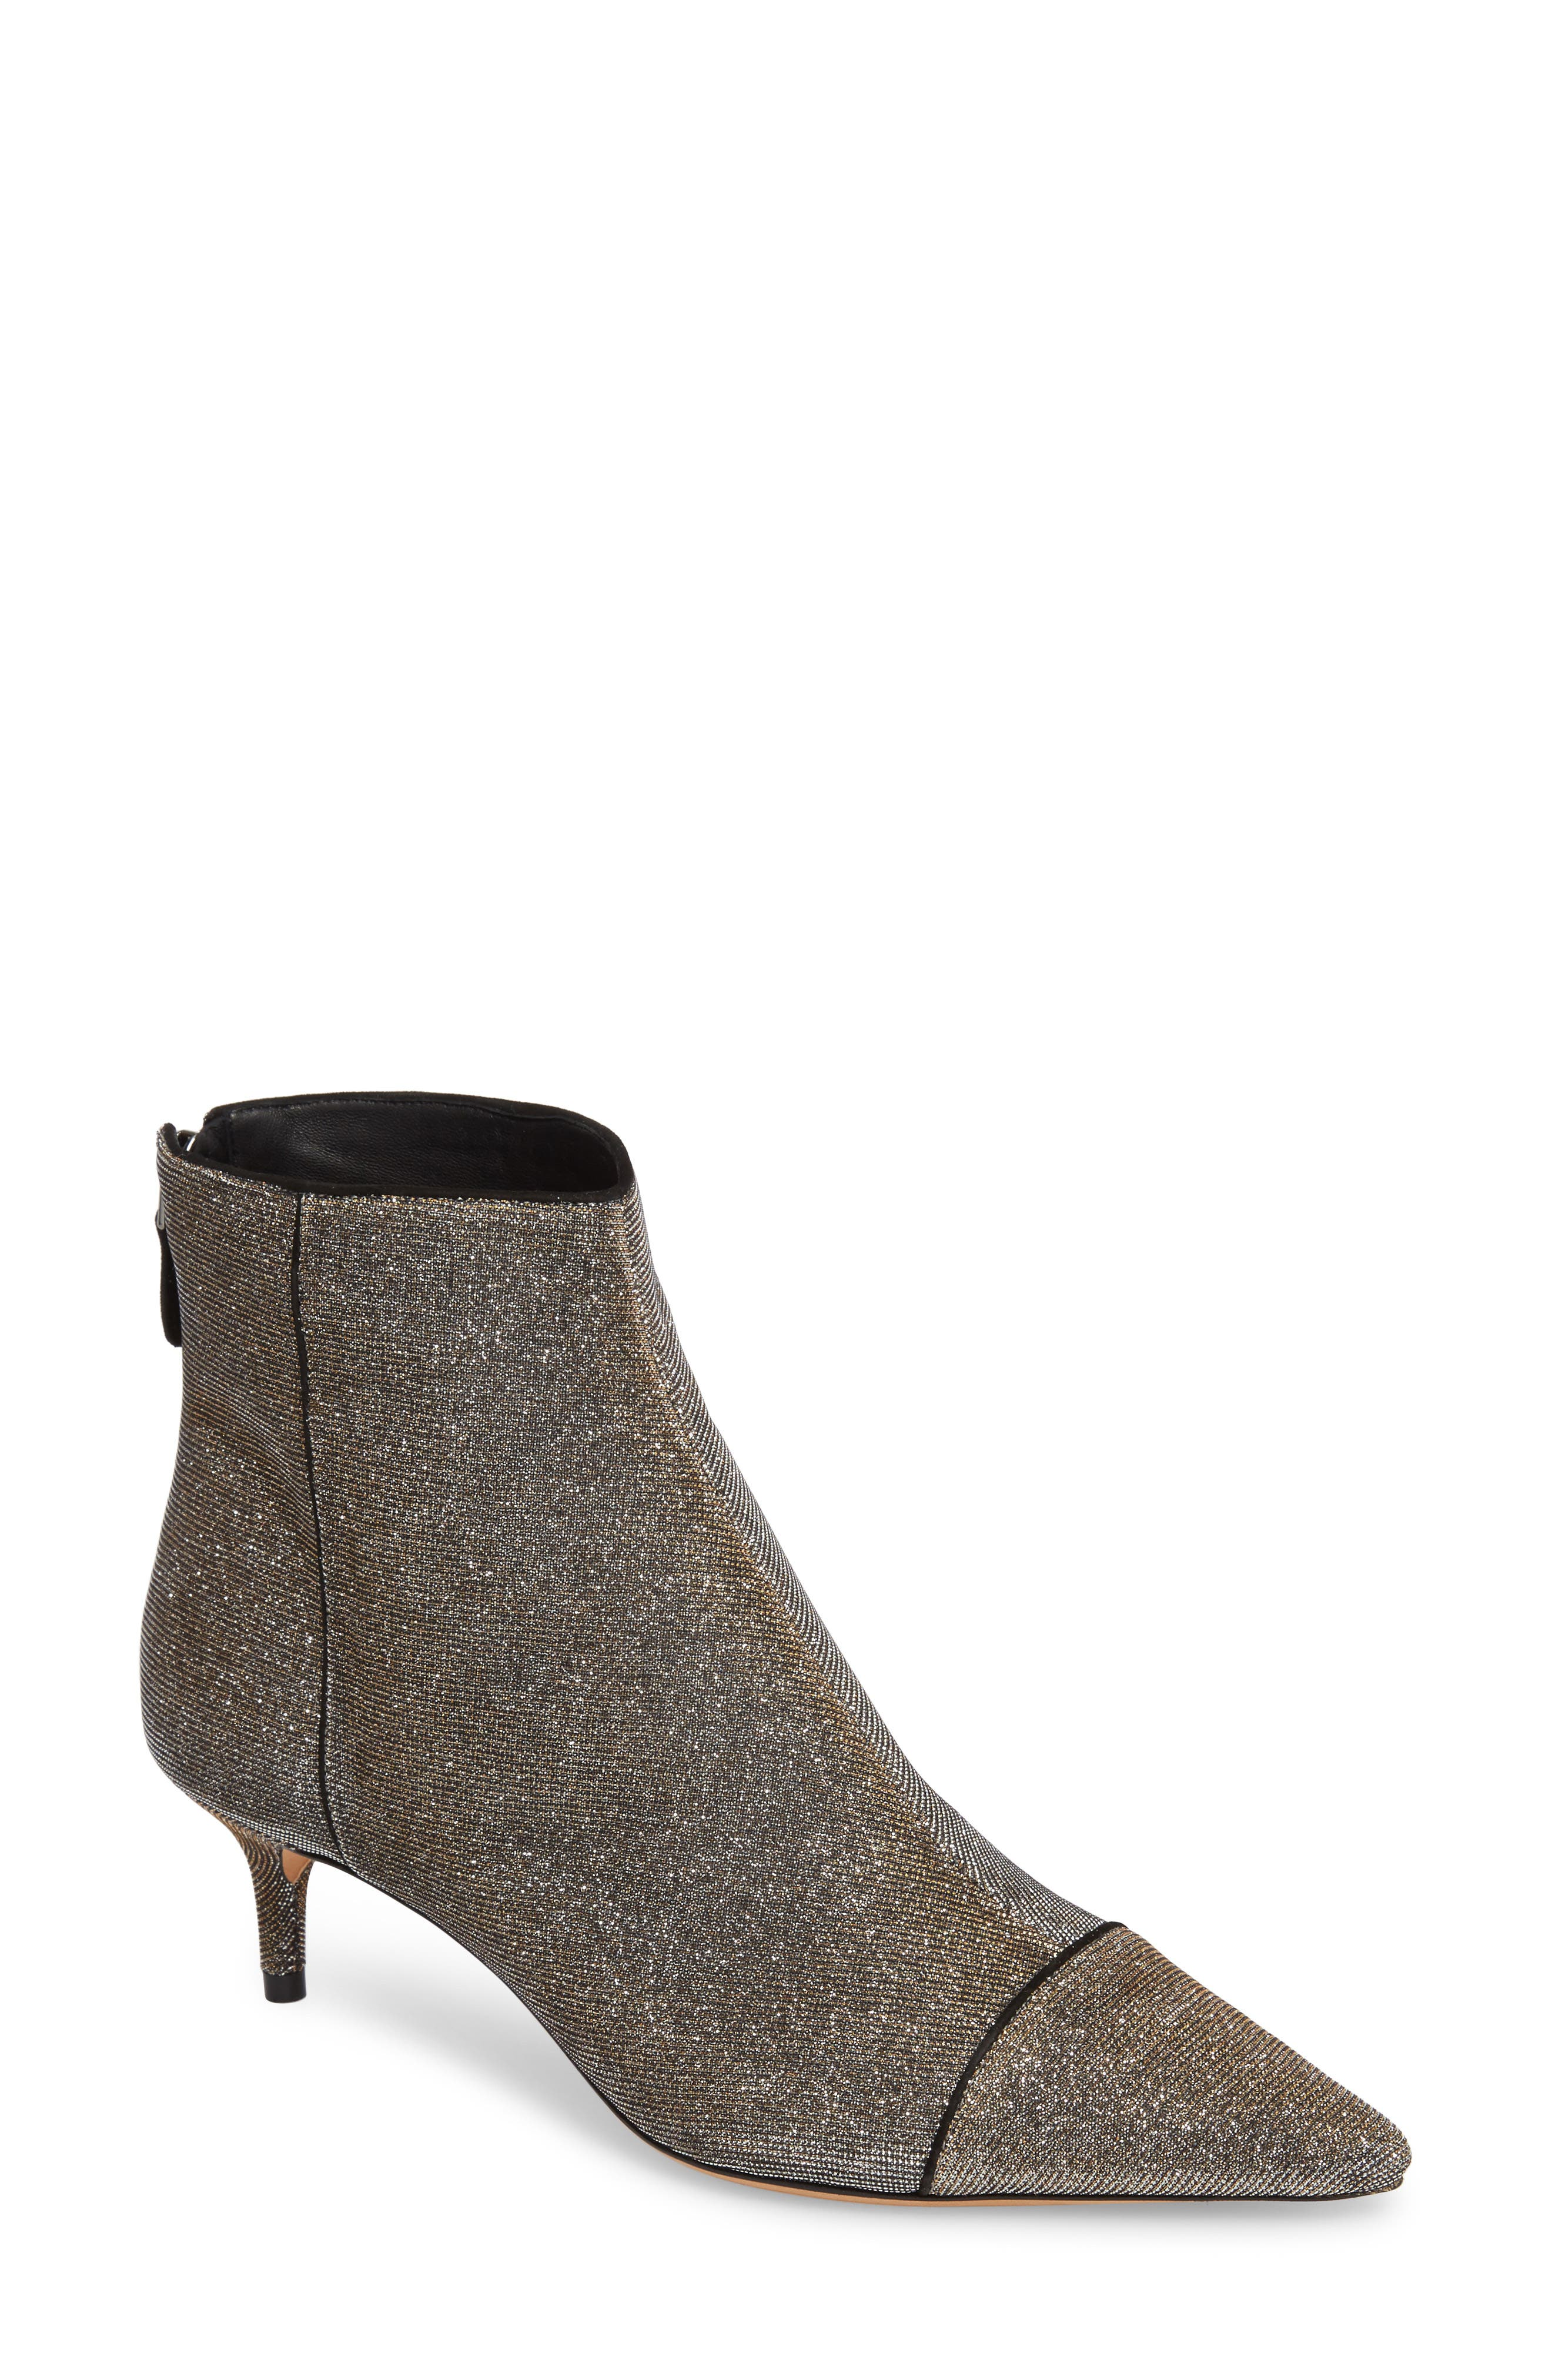 c41f5ef97af Women s Kitten Booties   Ankle Boots